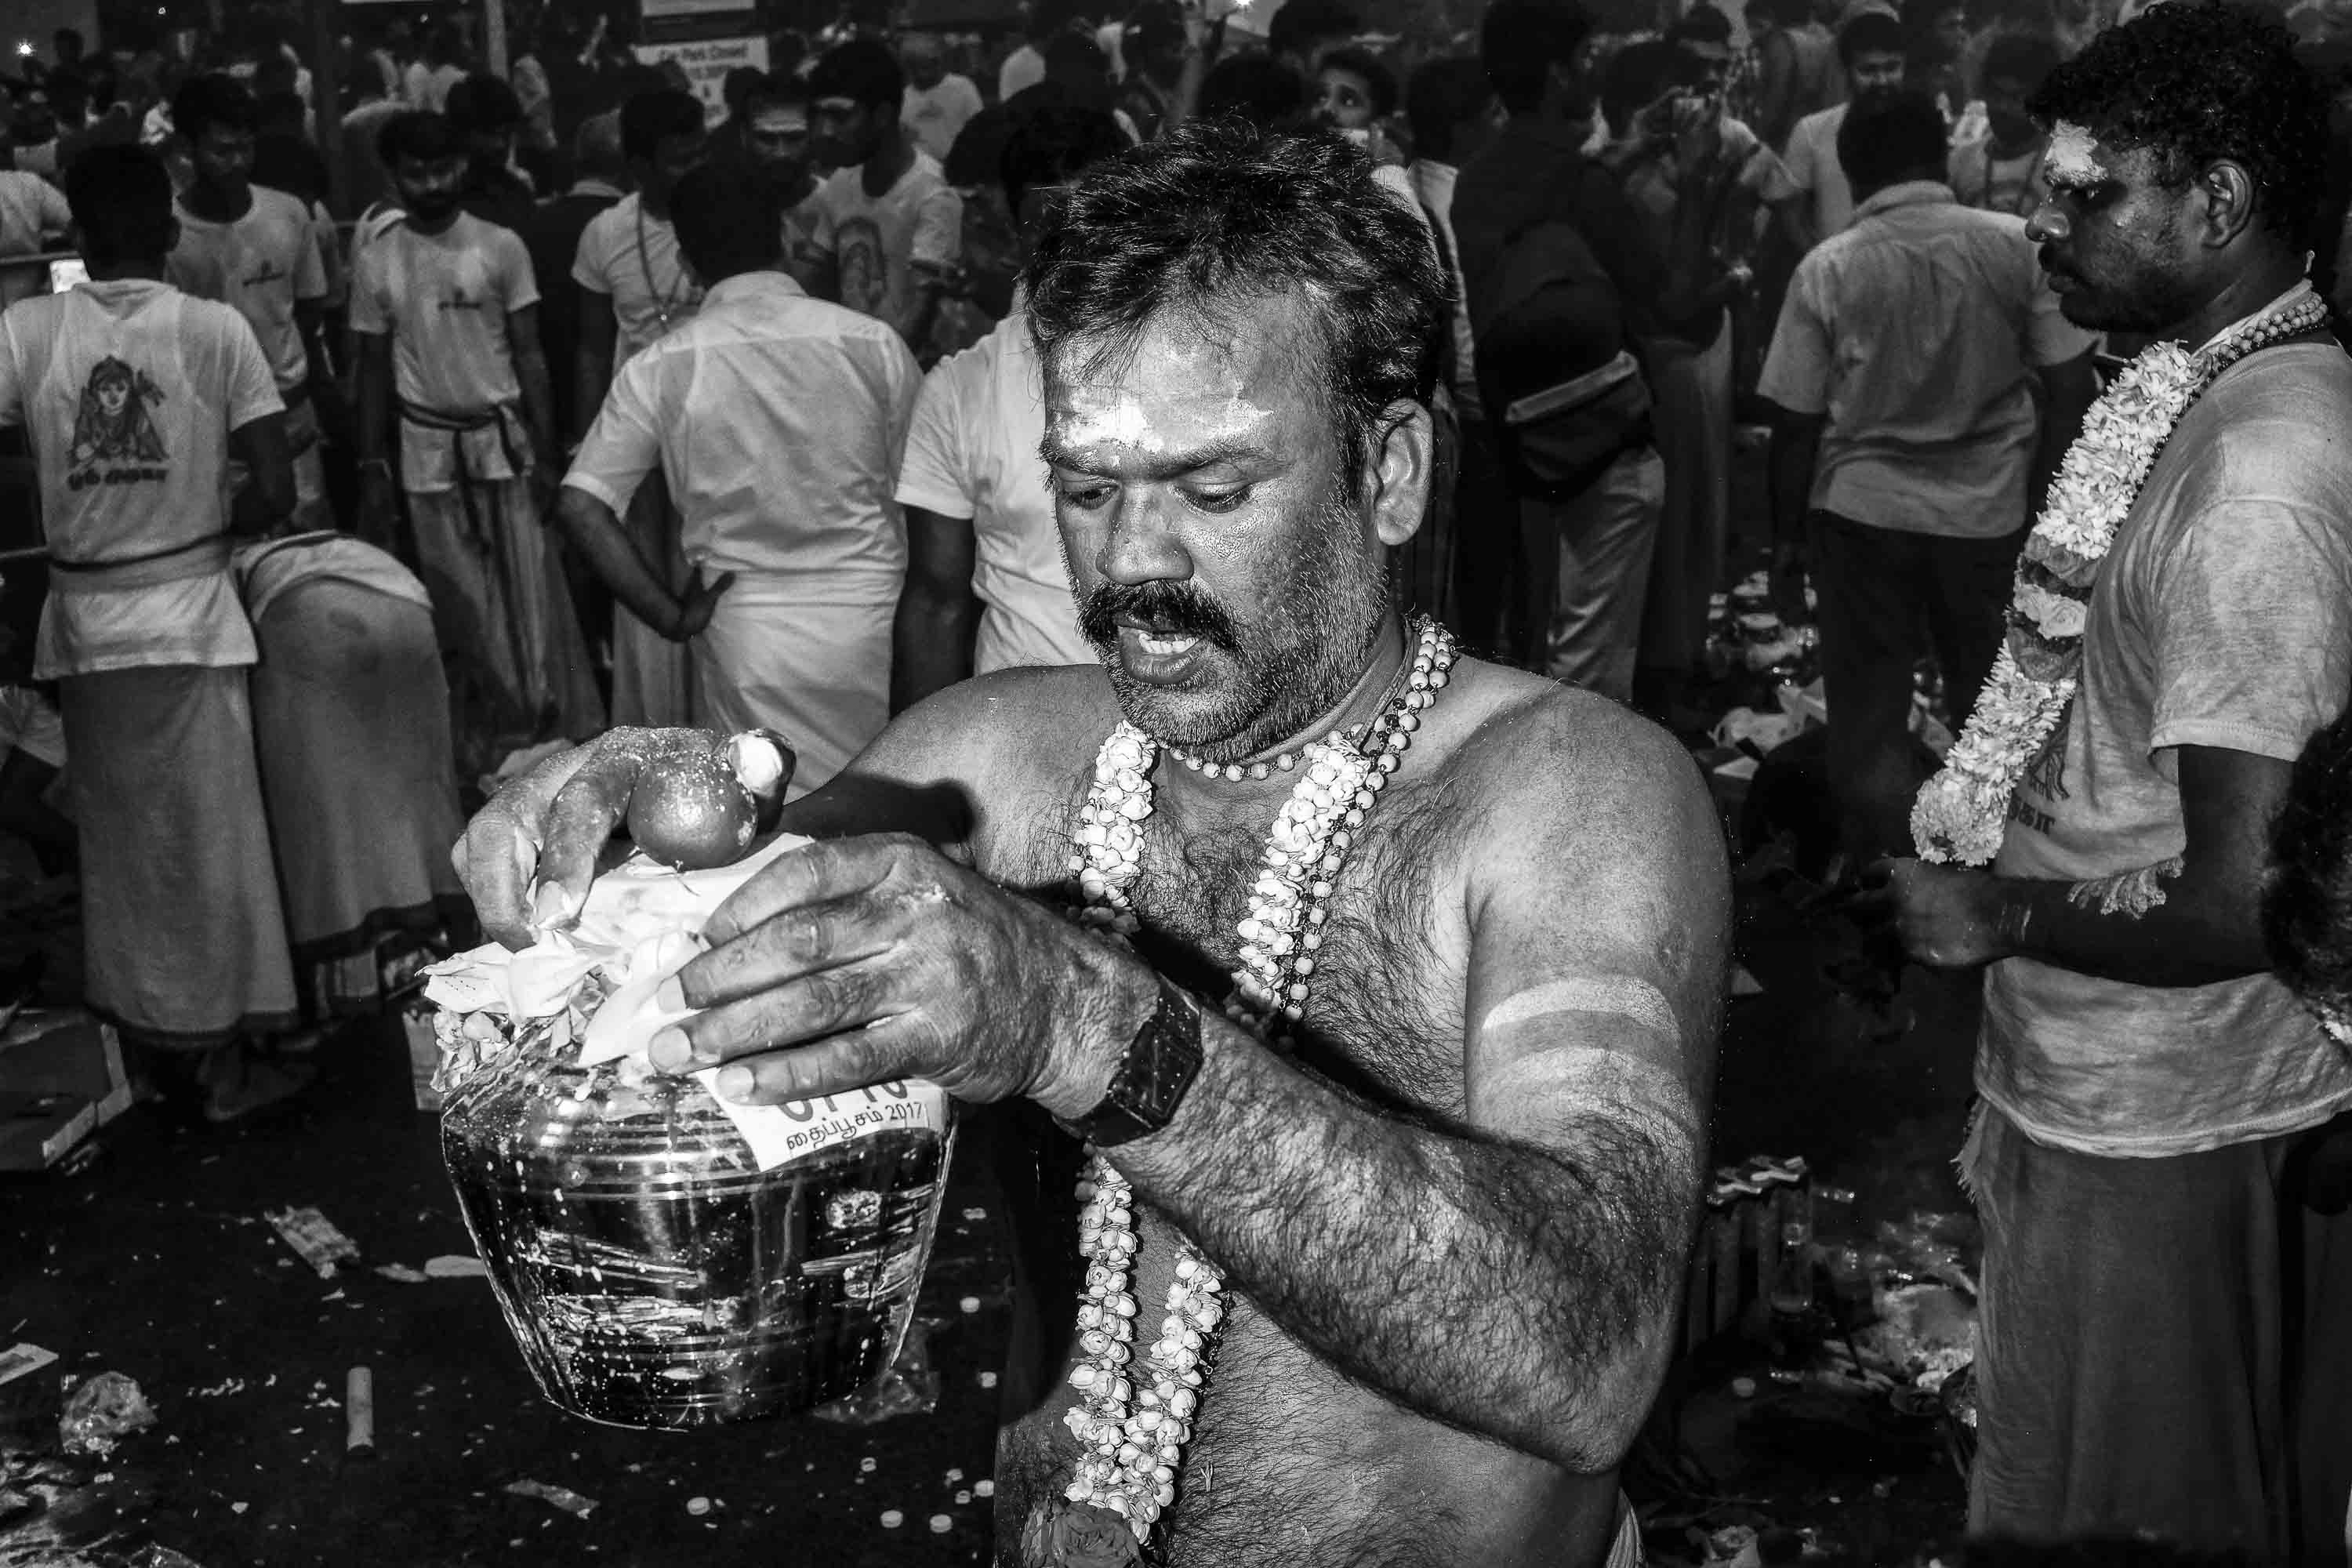 temple Little India Thaipusam Festival hindu Singapore photography jose jeuland documentary event